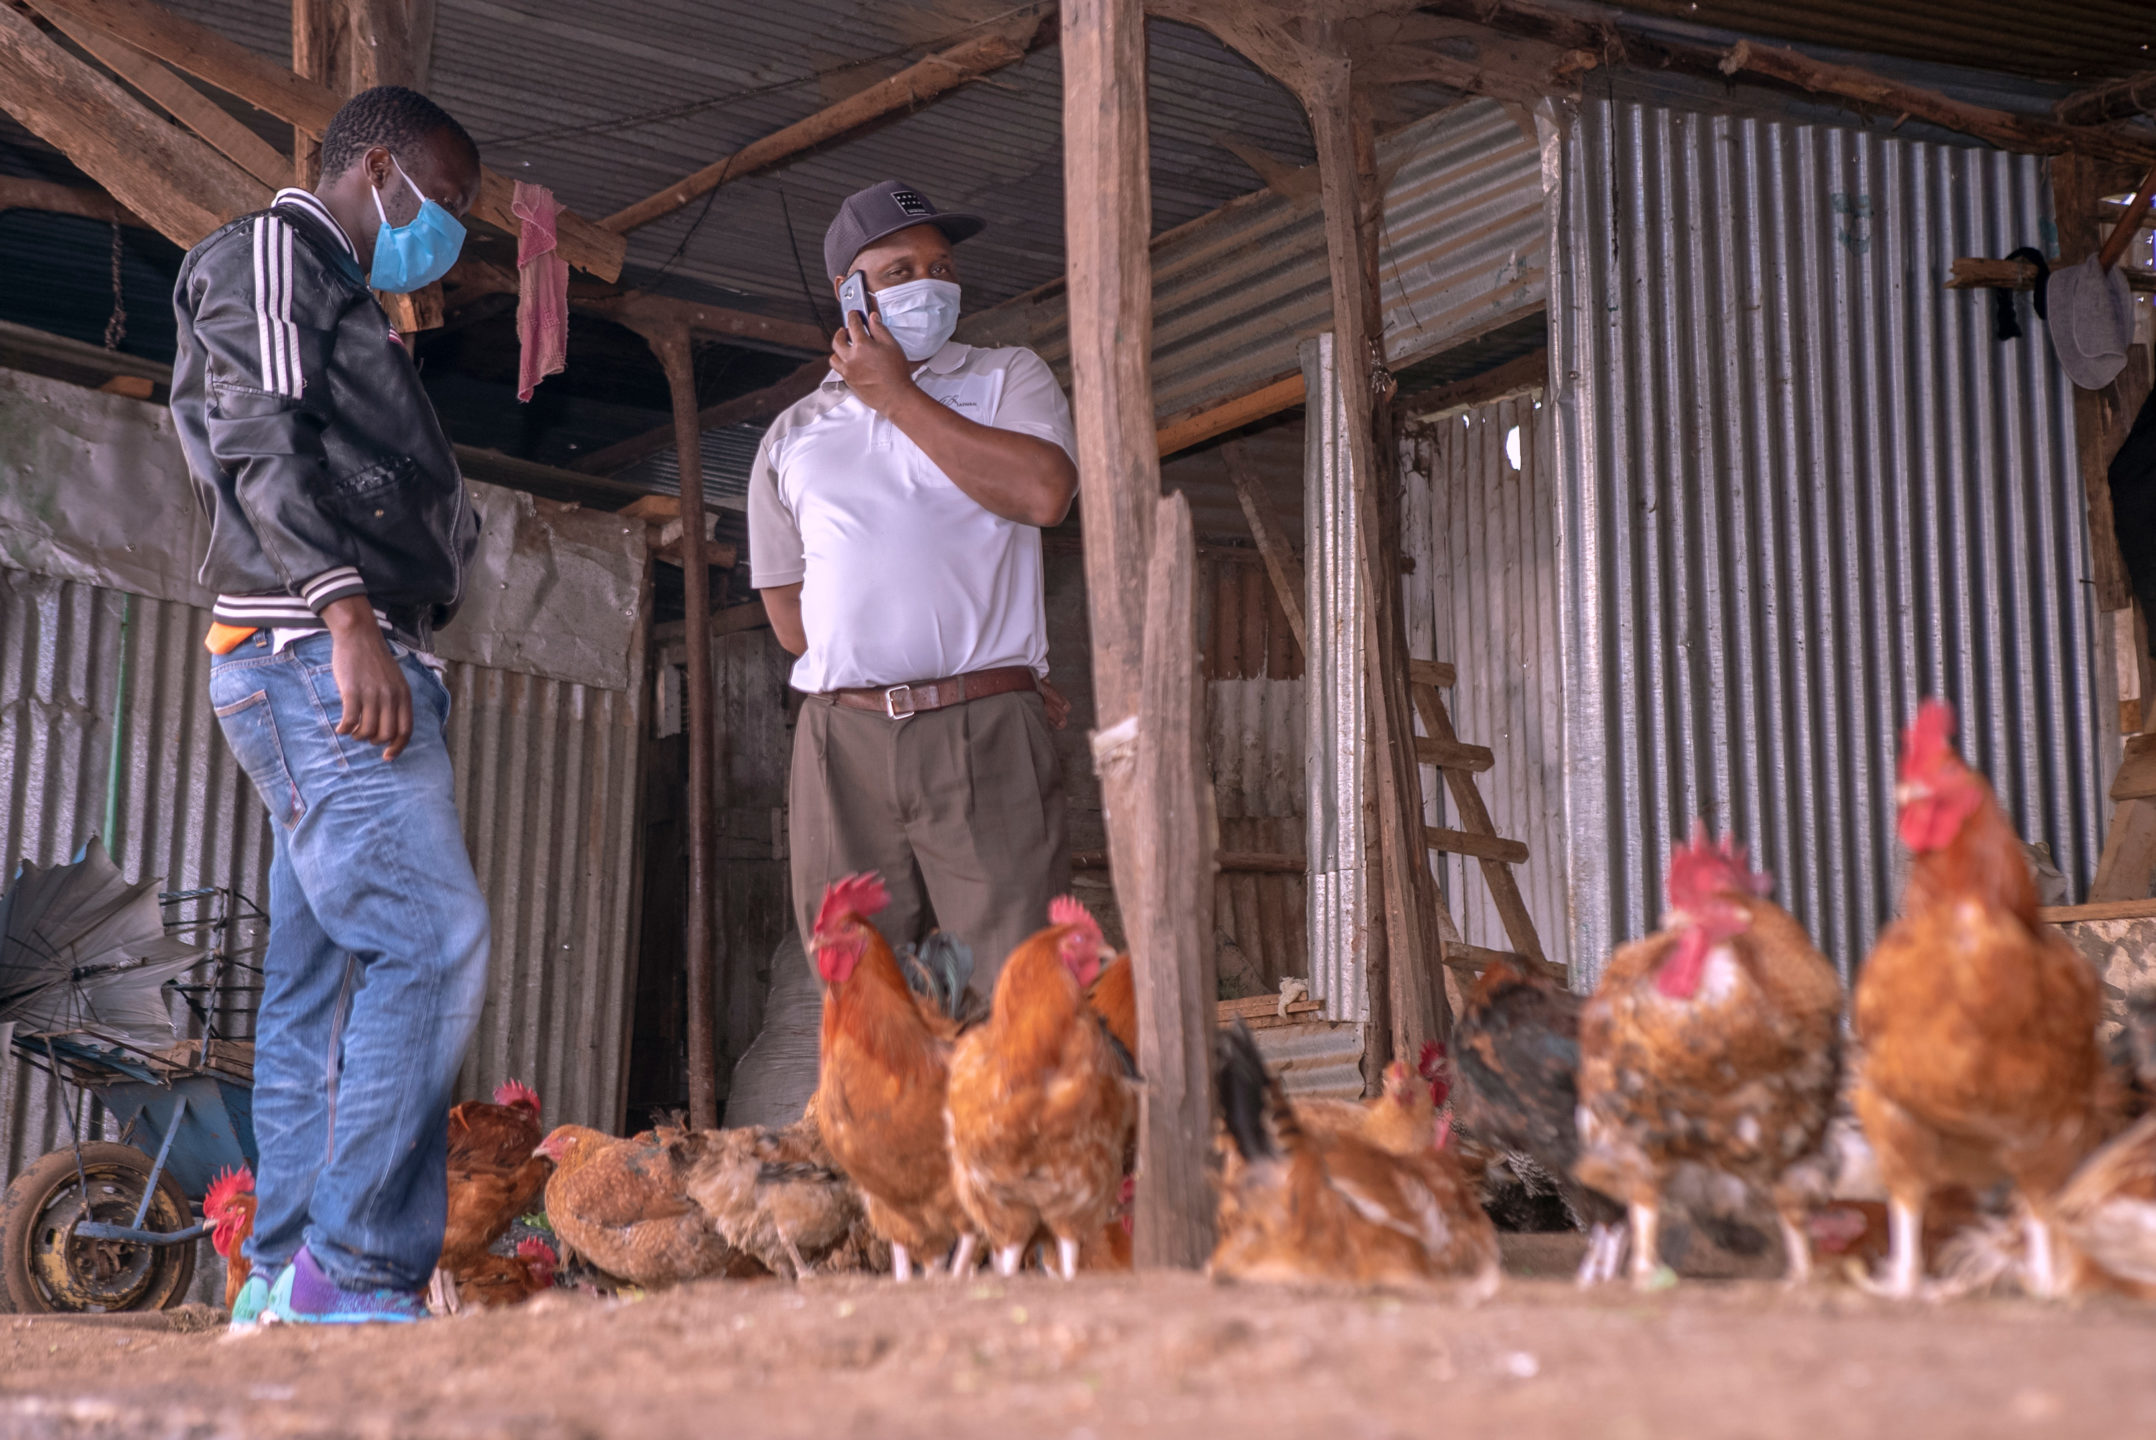 Two men standing and talking with chickens in the foreground.